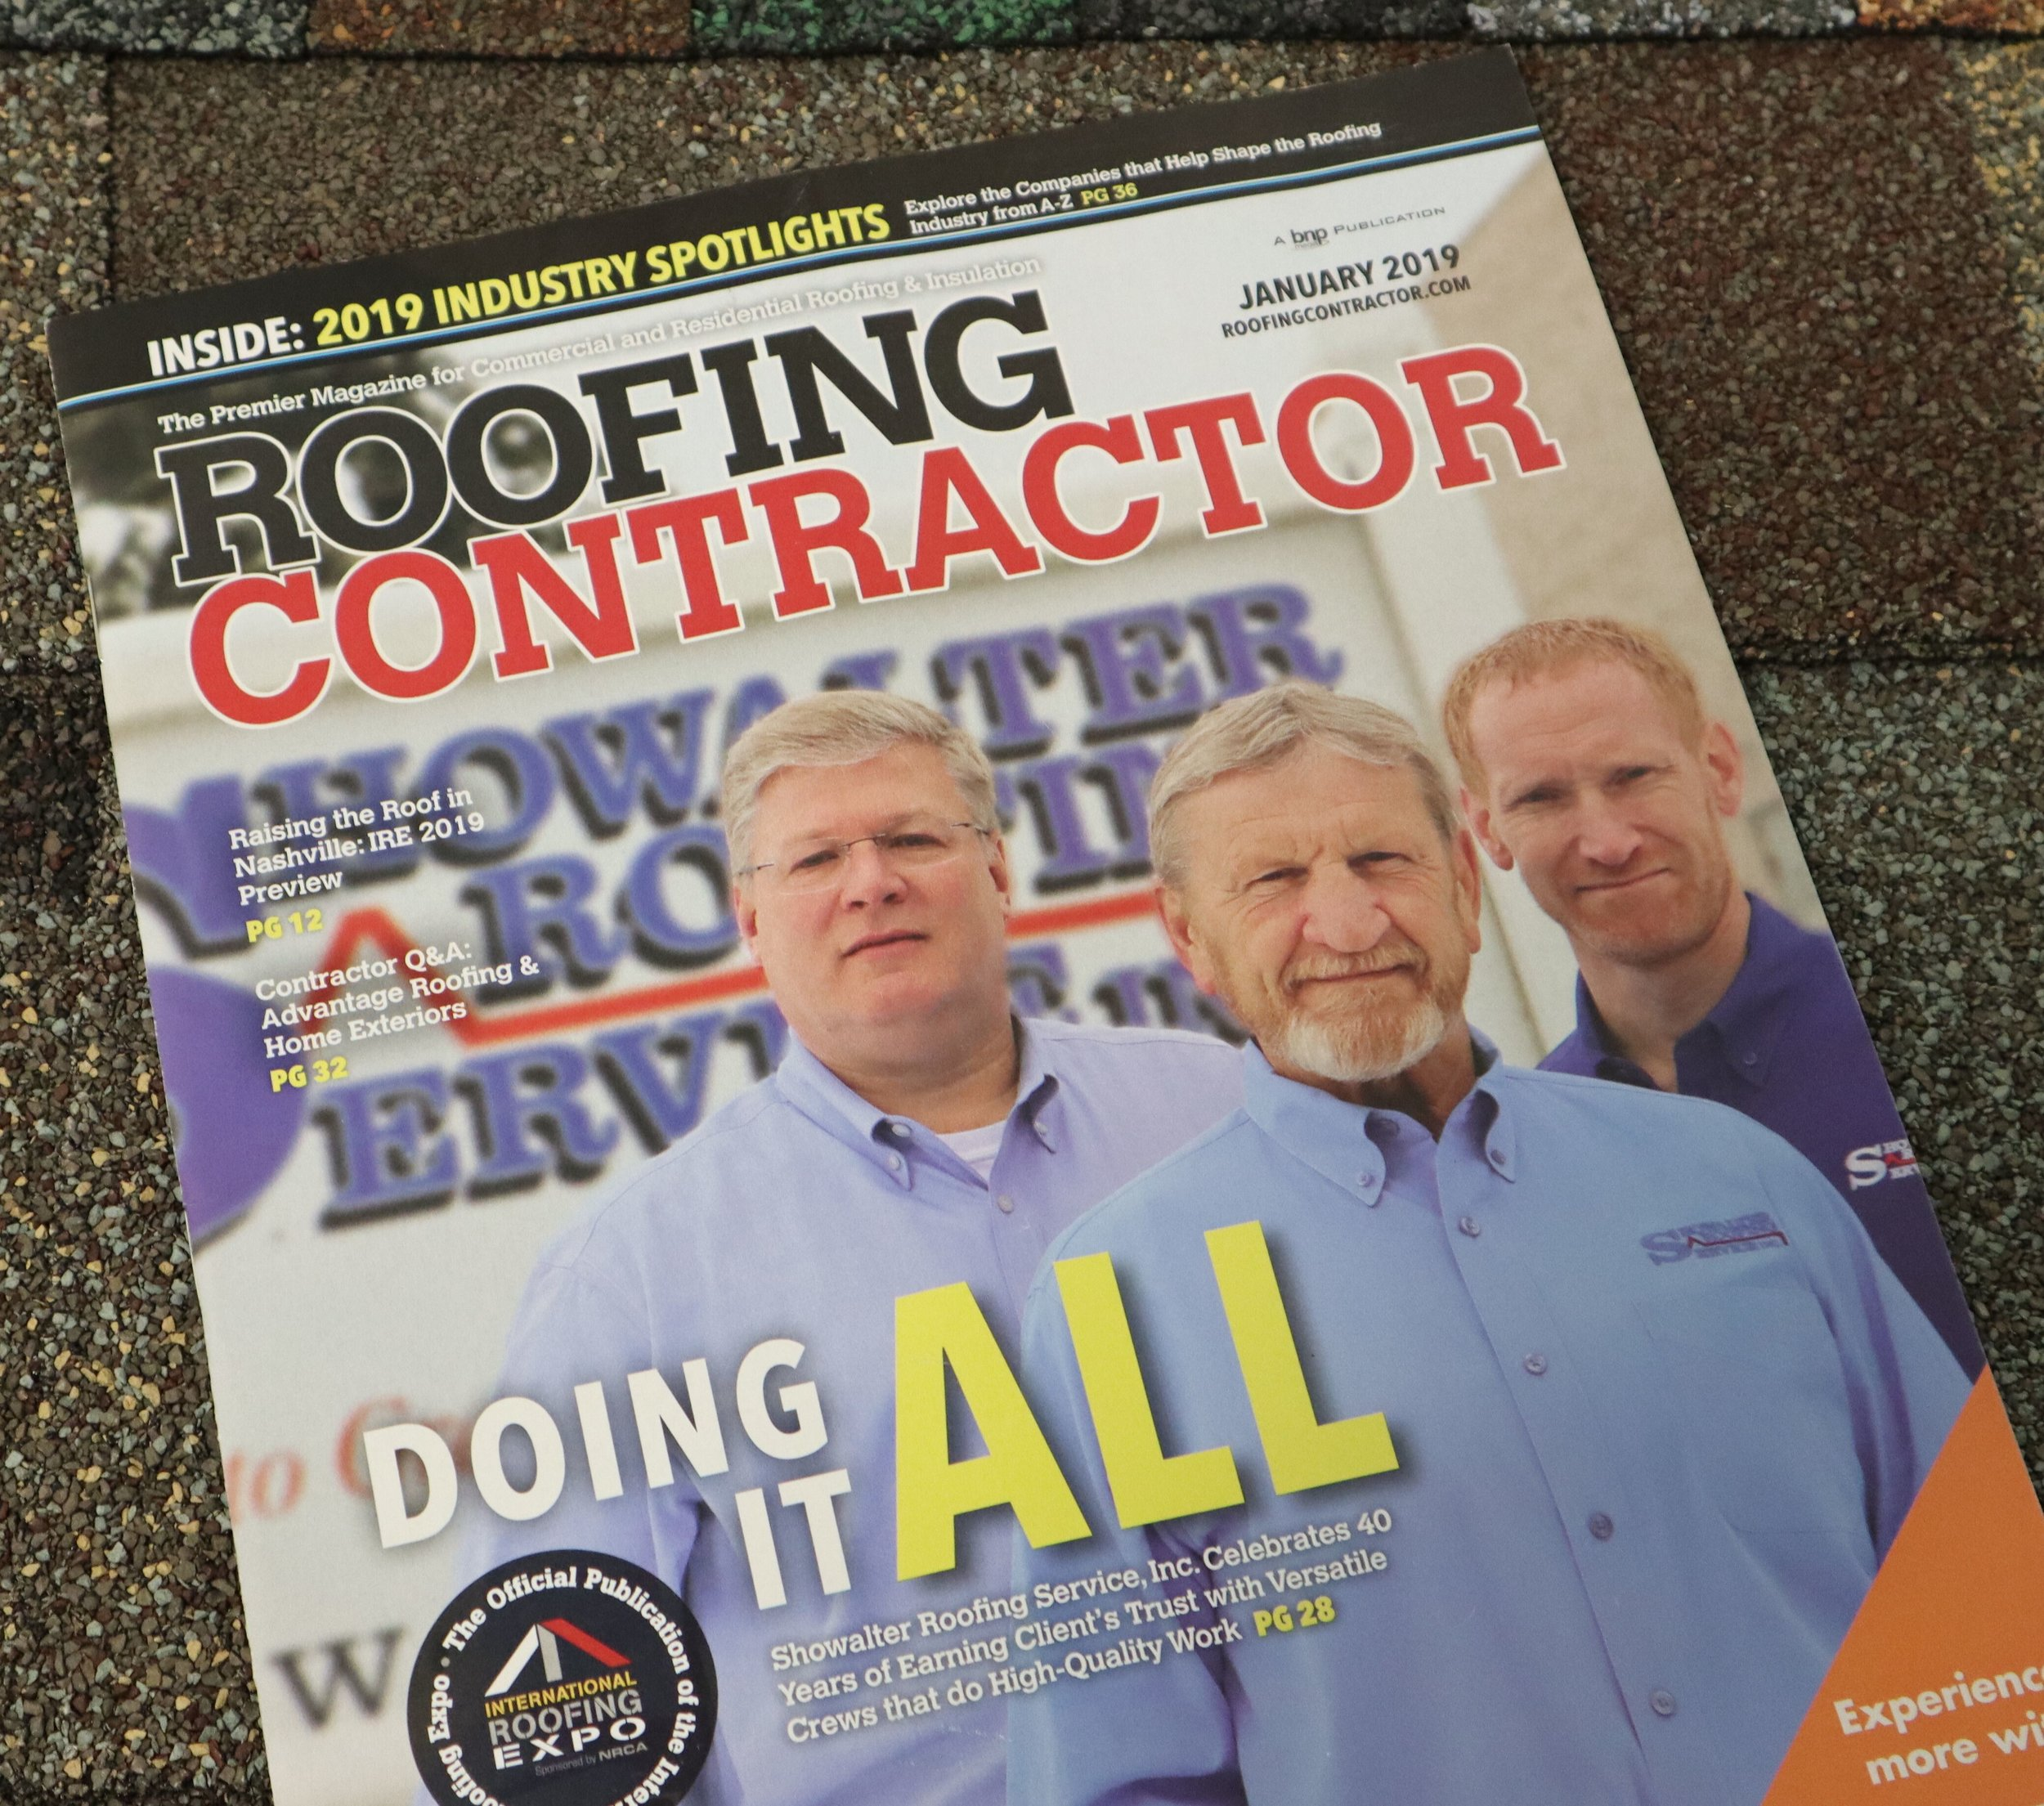 Showalter-Roofing-Services-Naperville-Illinois-Residential-Roofing-Contractor-Cover-of-Roofing-Contractor-Magazine.jpeg